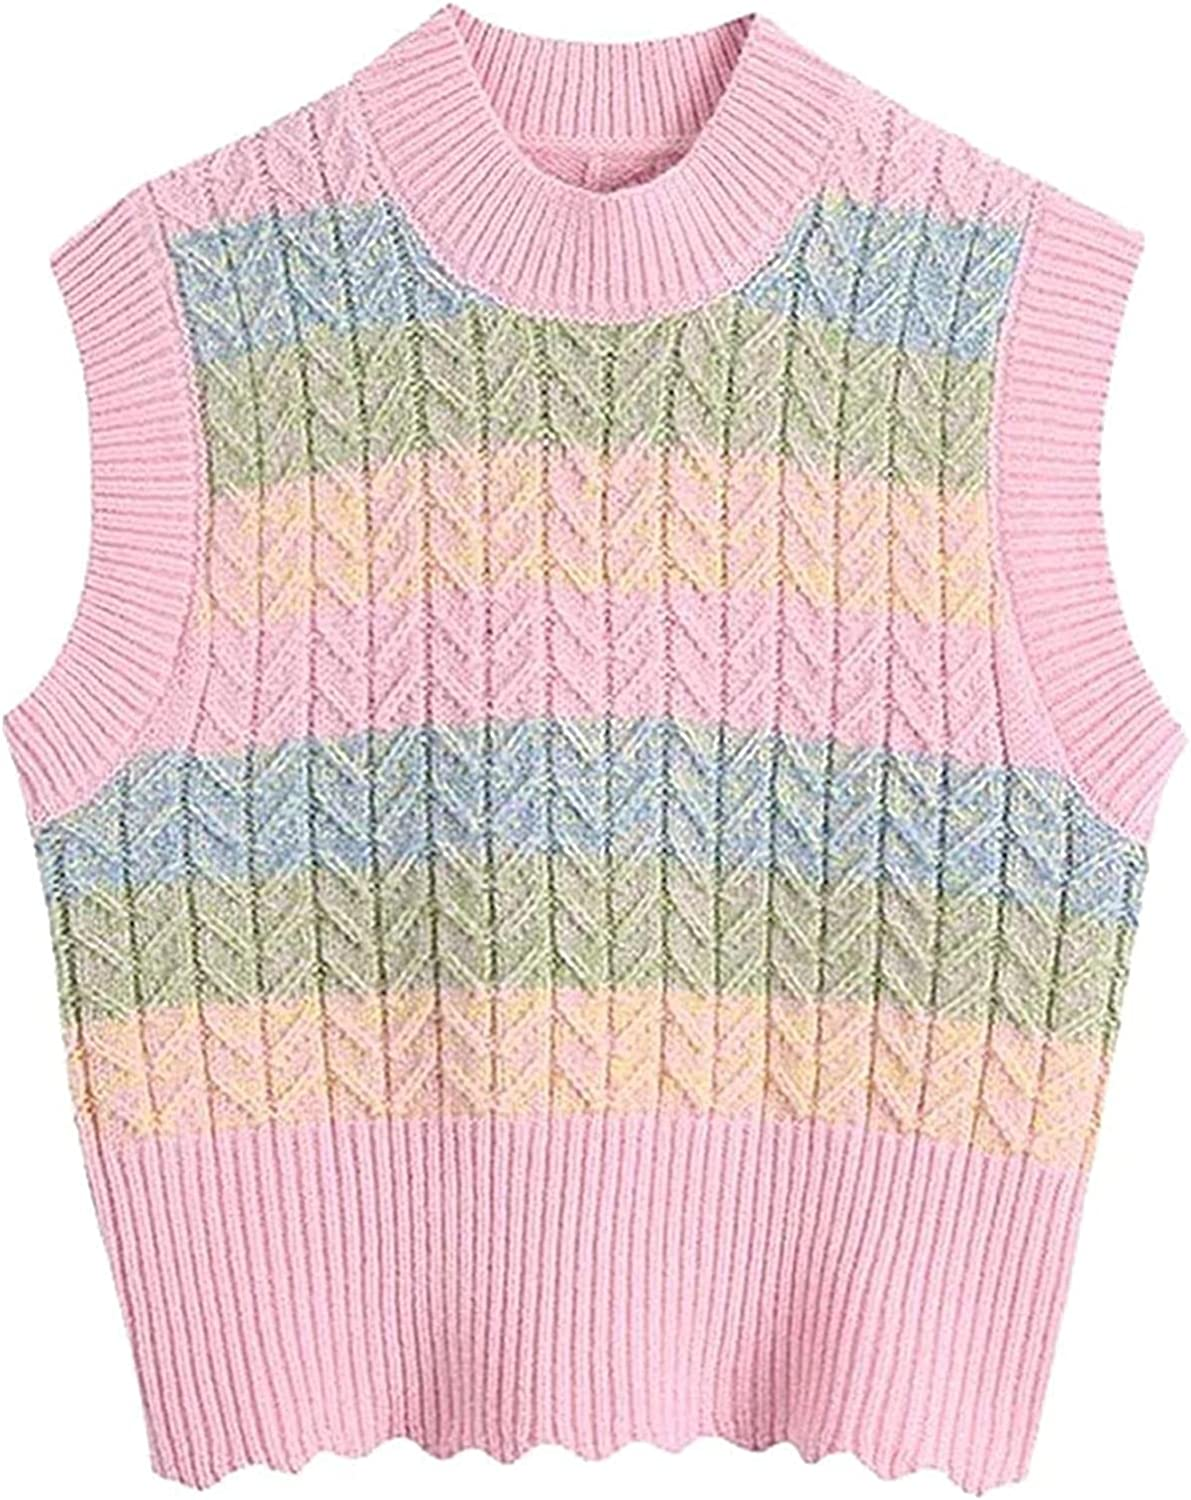 Women Sweet Fashion Color Striped Cropped Vest Sweater Vintage Sleeveless Female Waistcoat Chic Tops